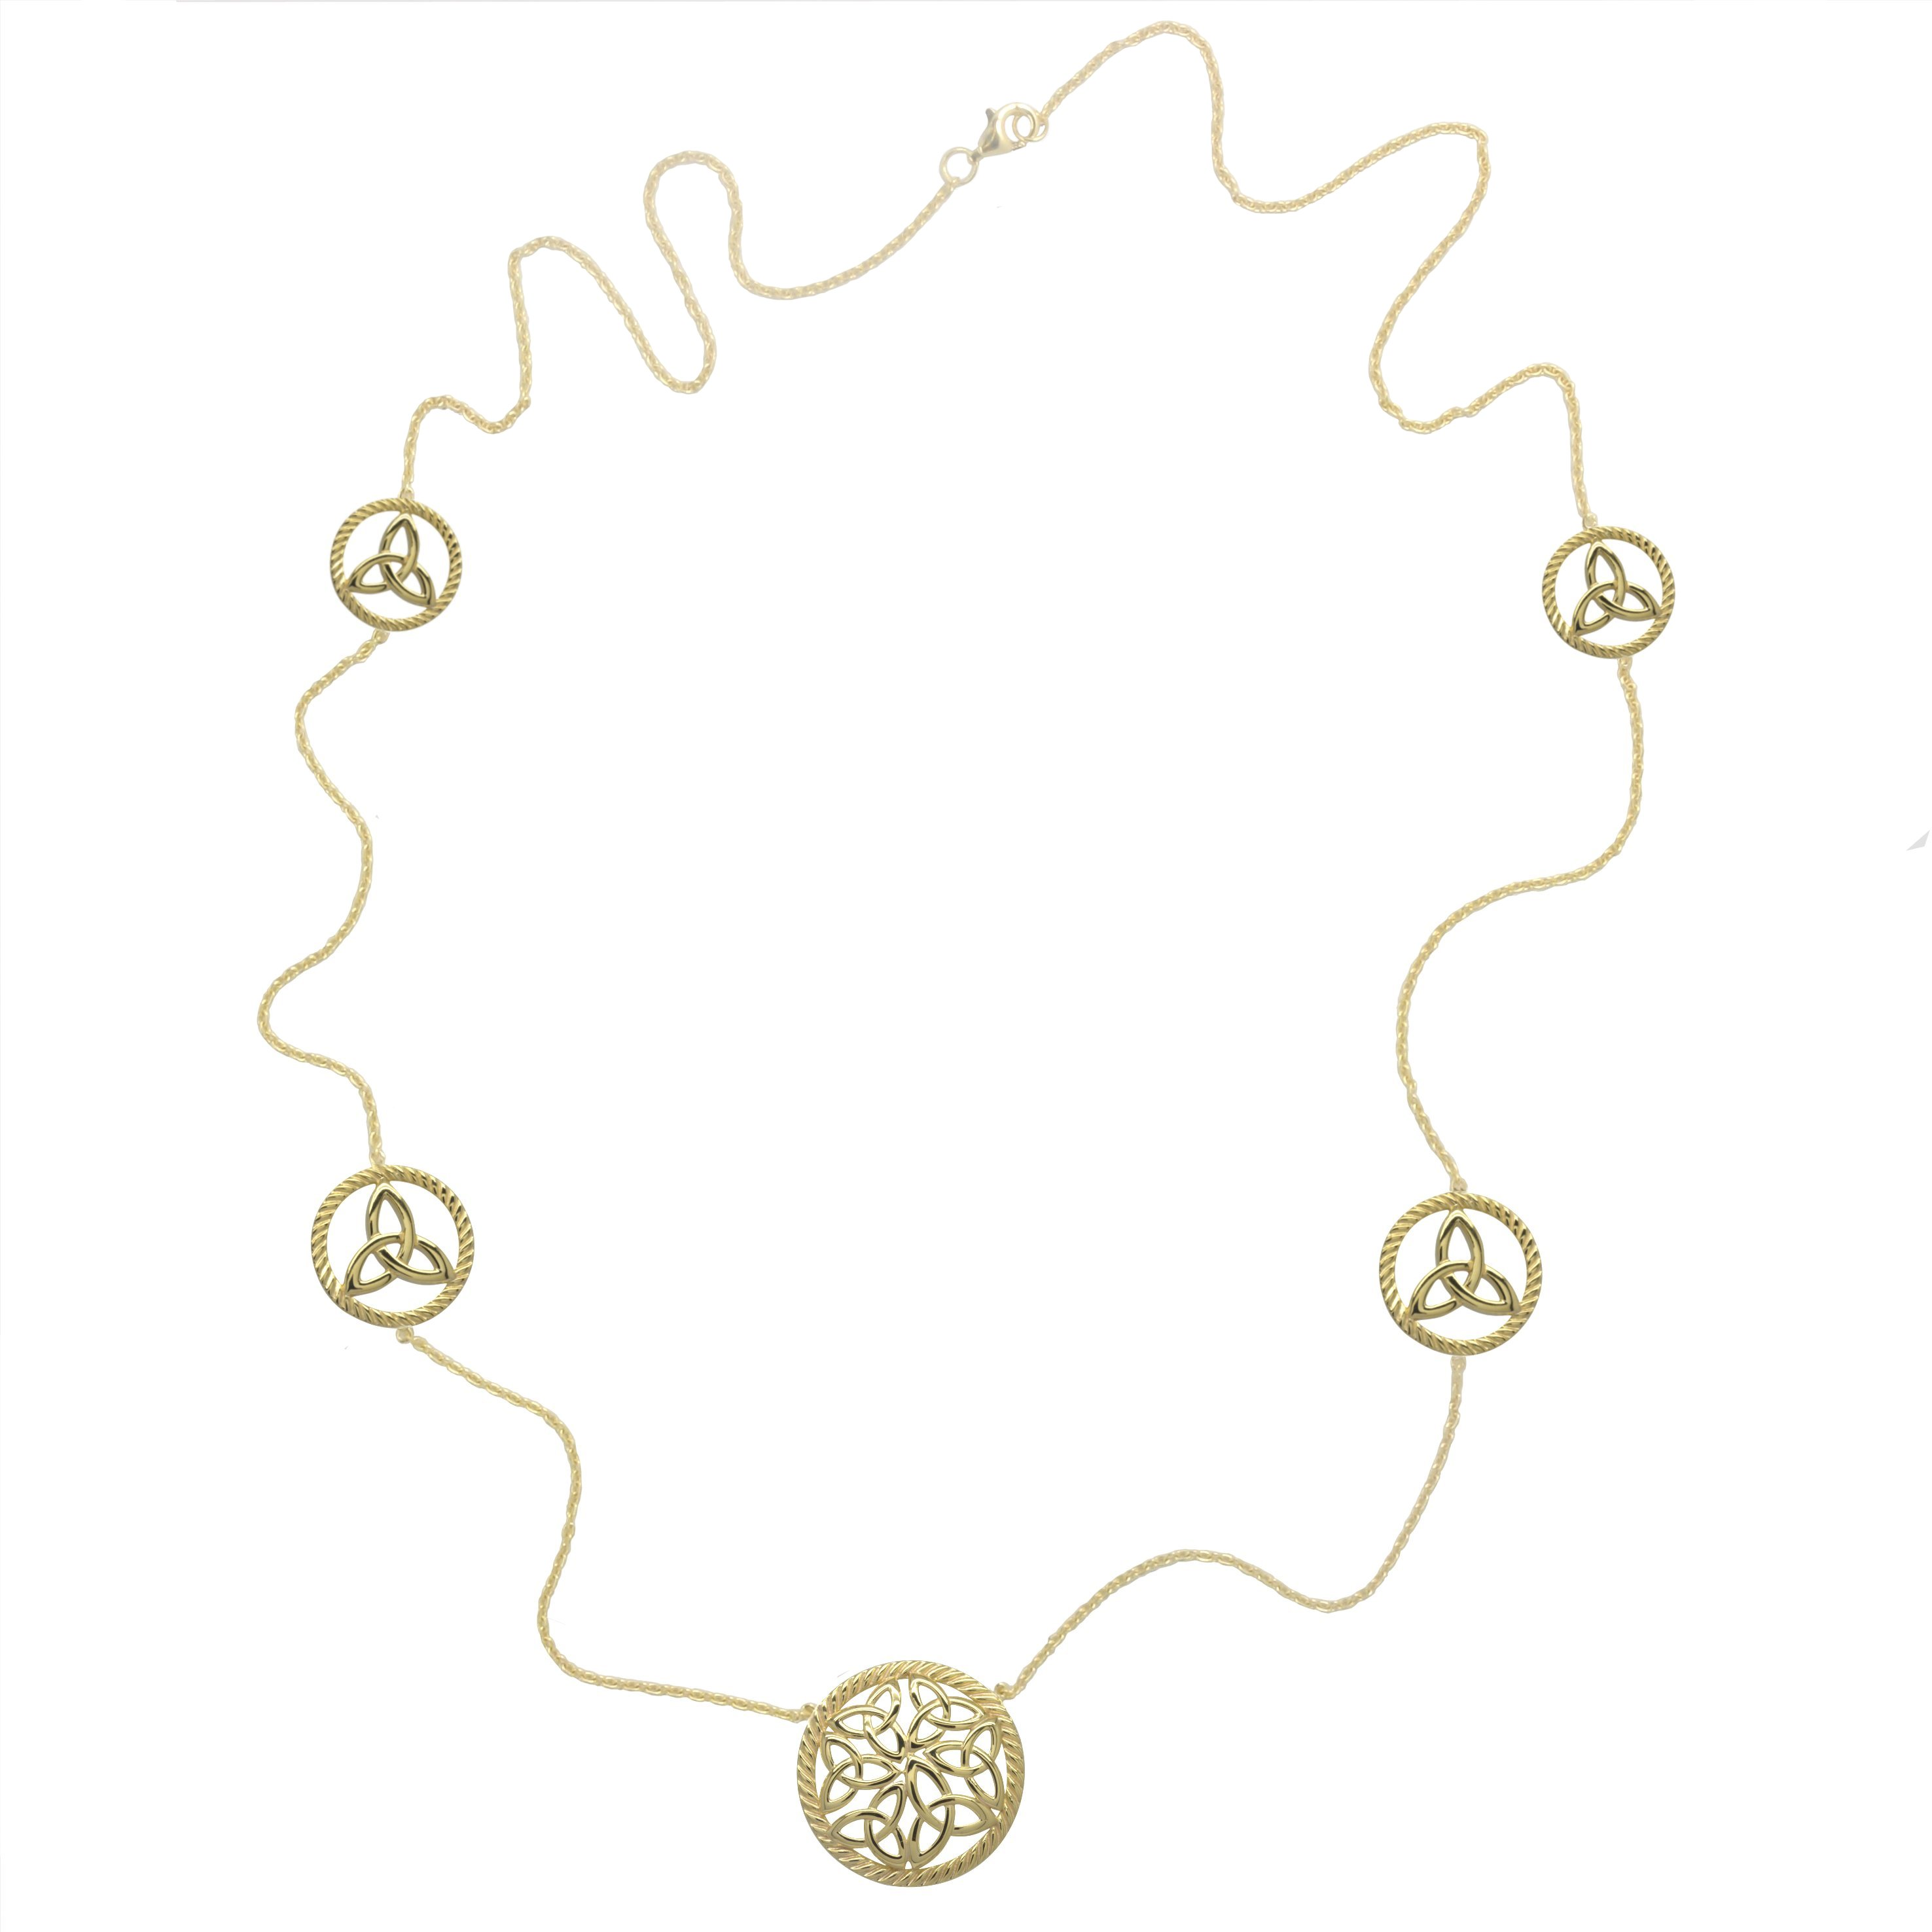 Irish Necklace | Gold Plated Sterling Silver Trinity Knot Irish Necklet